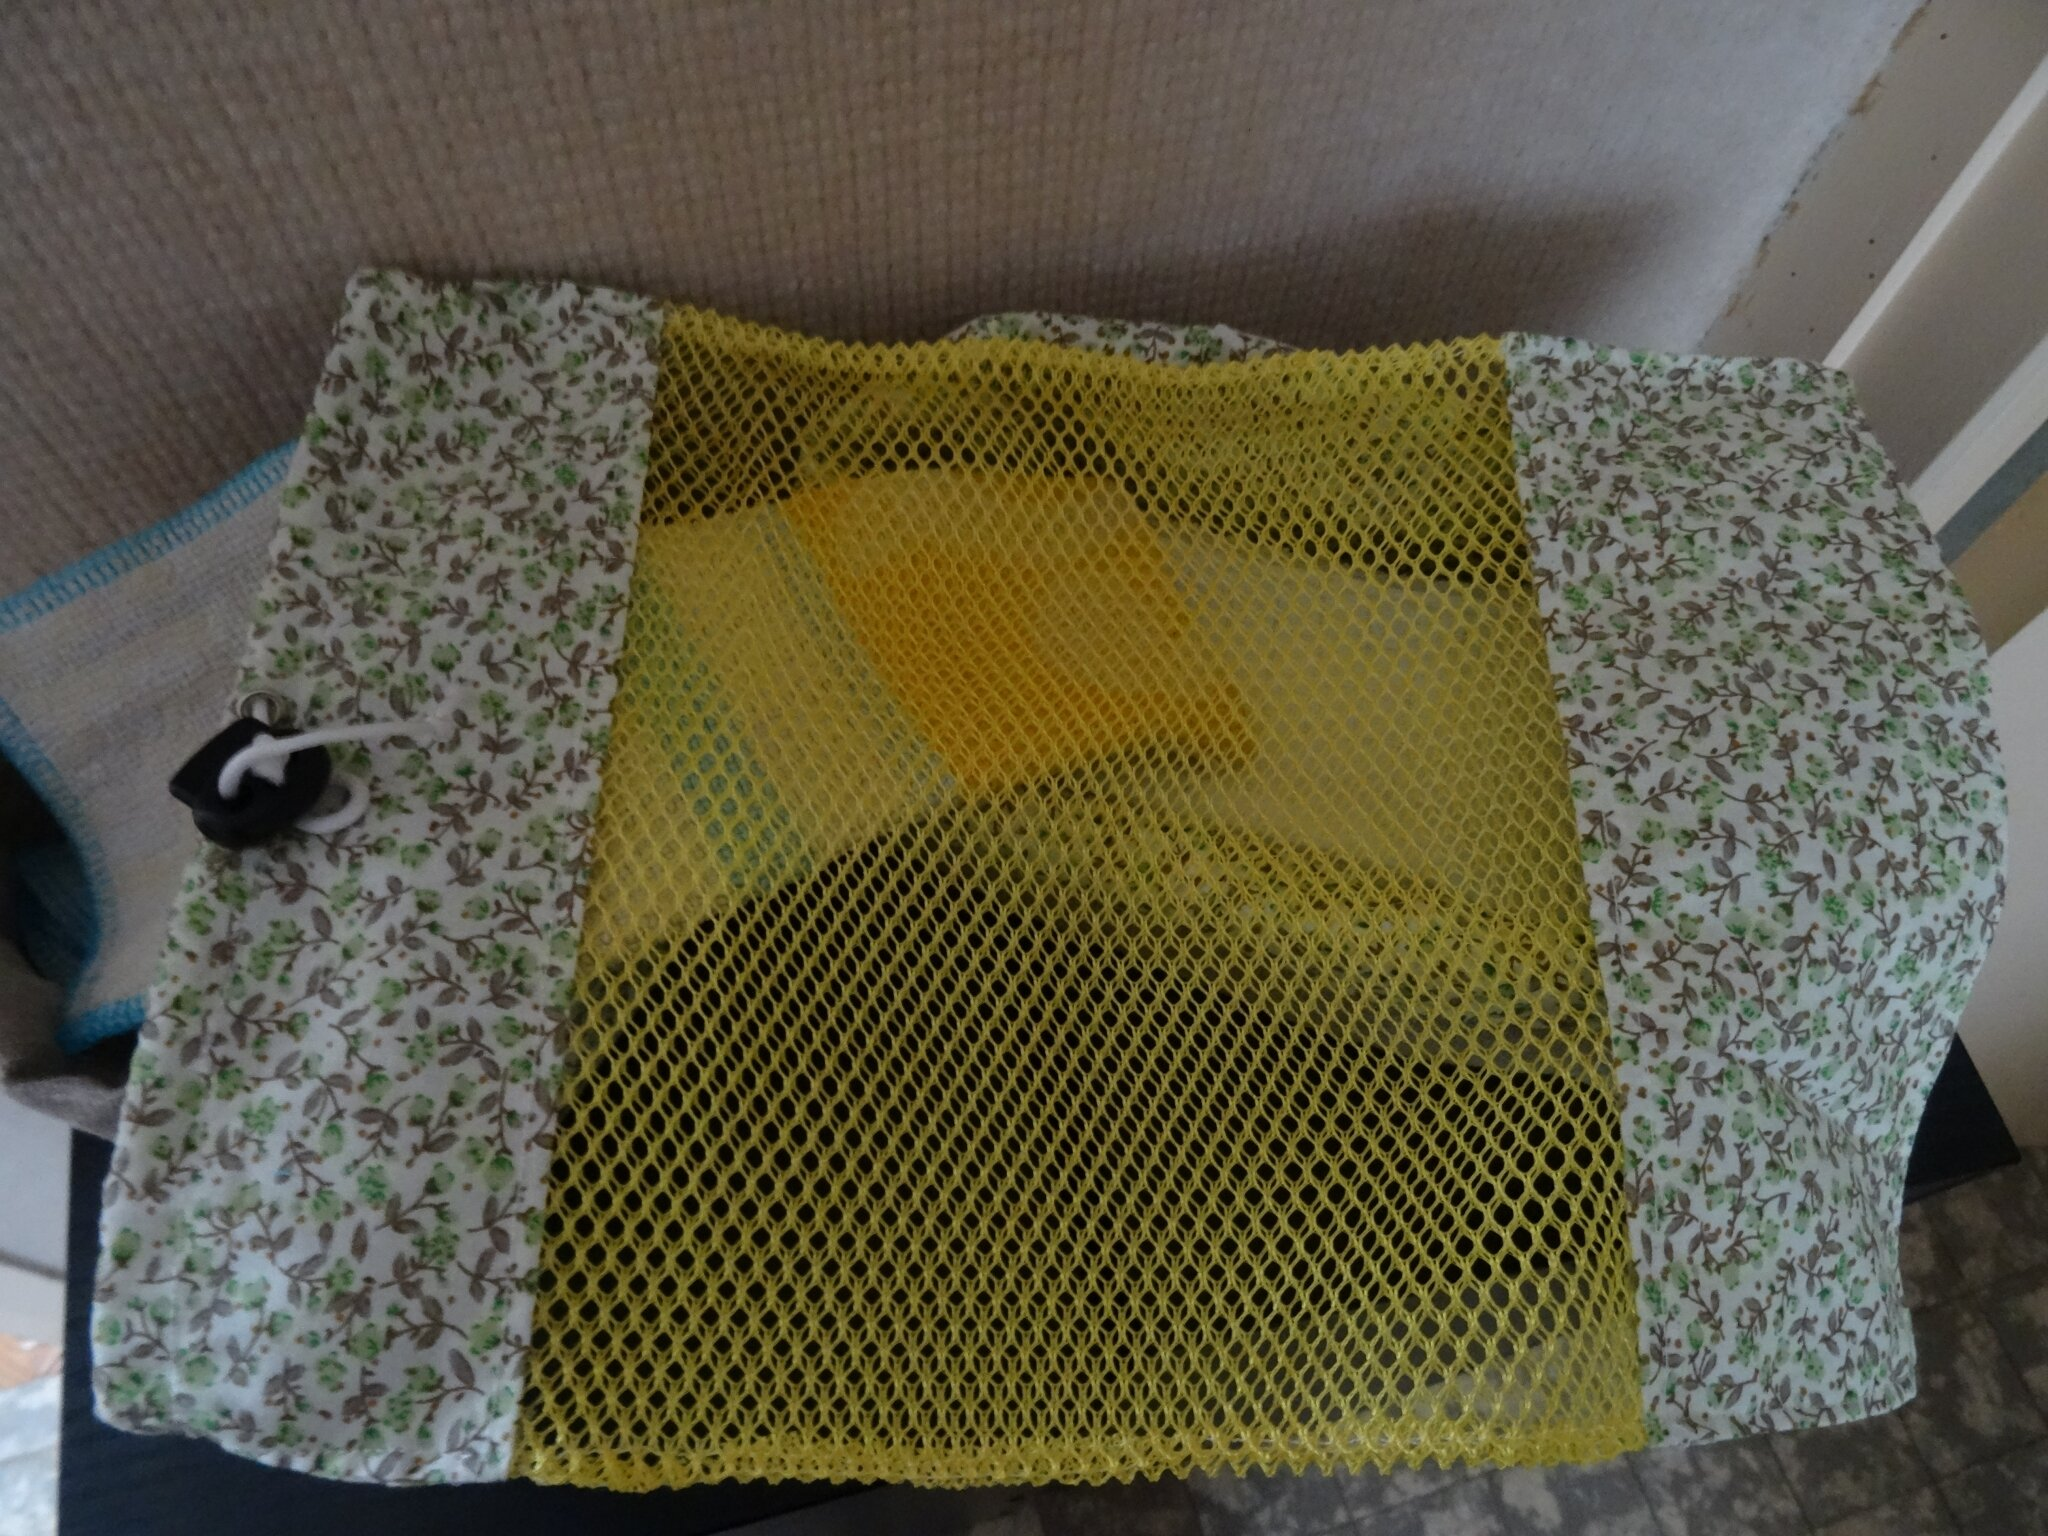 sac de lavage de crochet datation radiométrique fiable car